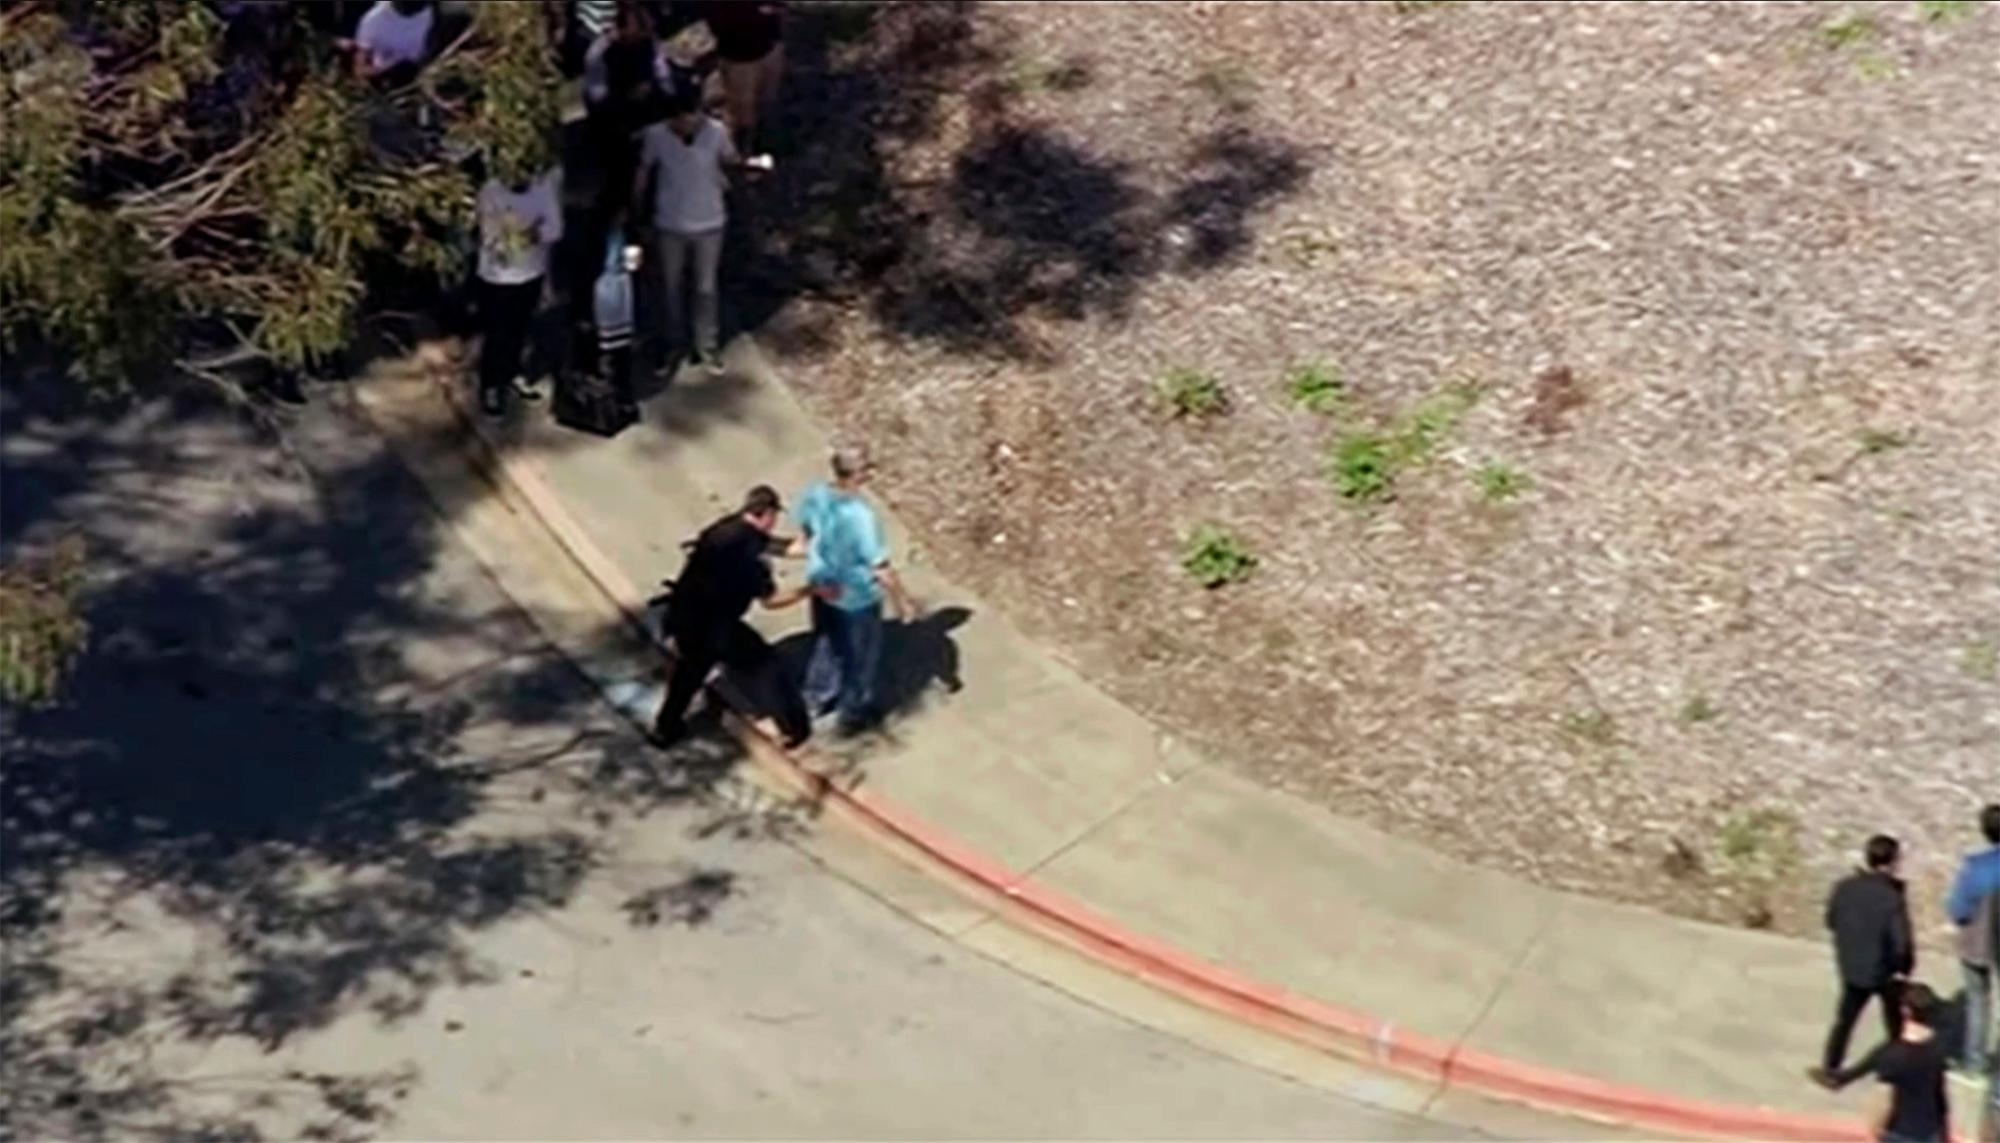 This image taken from video from KGO-TV shows a person is searched as police respond to reports of a shooting at YouTube headquarters in the city of San Bruno, Calif., on Tuesday, April 3, 2018. City Manager Connie Jackson says there have been multiple 911 calls reporting a shooting and that police and fire officials have responded.  (KGO-TV via AP)